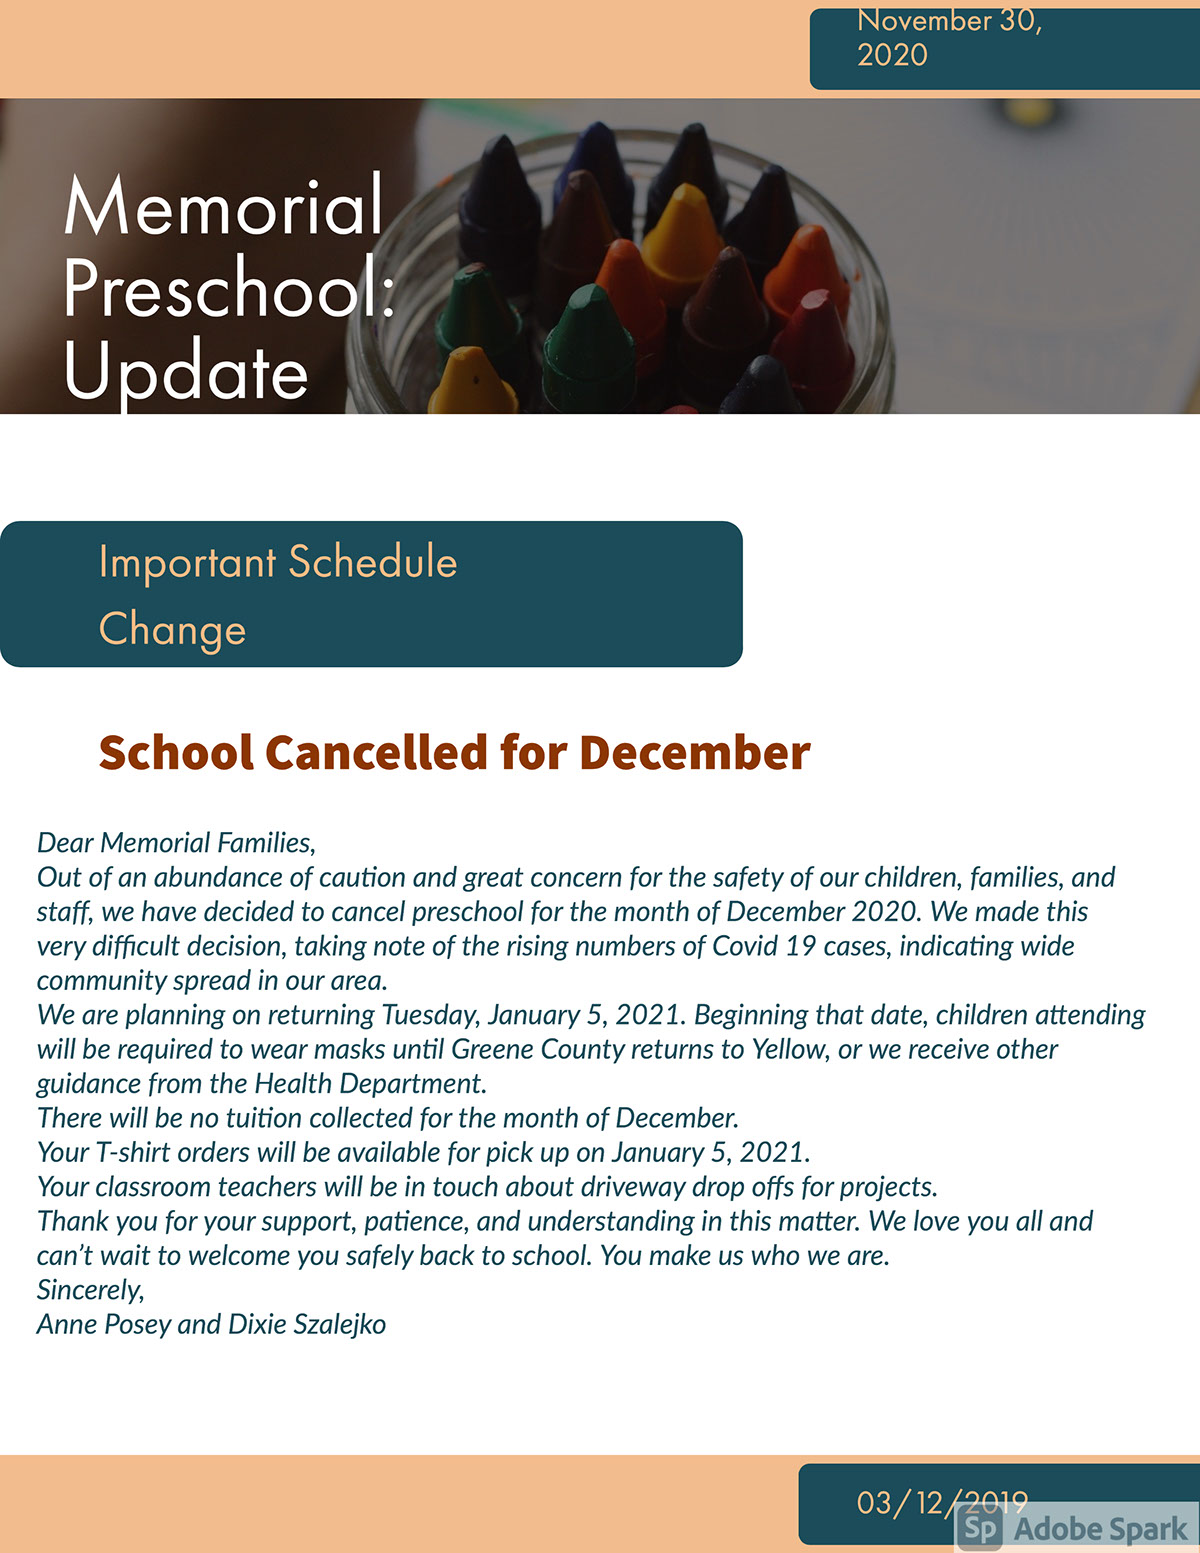 Memorial Preschool: Update Memorial Preschool: Update School Cancelled for December Important Schedule Change 03/12/2019 November 30, 2020 Dear Memorial Families, Out of an abundance of caution and great concern for the safety of our children, families, and staff, we have decided to cancel preschool for the month of December 2020. We made this very difficult decision, taking note of the rising numbers of Covid 19 cases, indicating wide community spread in our area. We are planning on returning Tuesday, January 5, 2021. Beginning that date, children attending will be required to wear masks until Greene County returns to Yellow, or we receive other guidance from the Health Department. There will be no tuition collected for the month of December. Your T-shirt orders will be available for pick up on January 5, 2021. Your classroom teachers will be in touch about driveway drop offs for projects. Thank you for your support, patience, and understanding in this matter. We love you all and can't wait to welcome you safely back to school. You make us who we are. Sincerely, Anne Posey and Dixie Szalejko